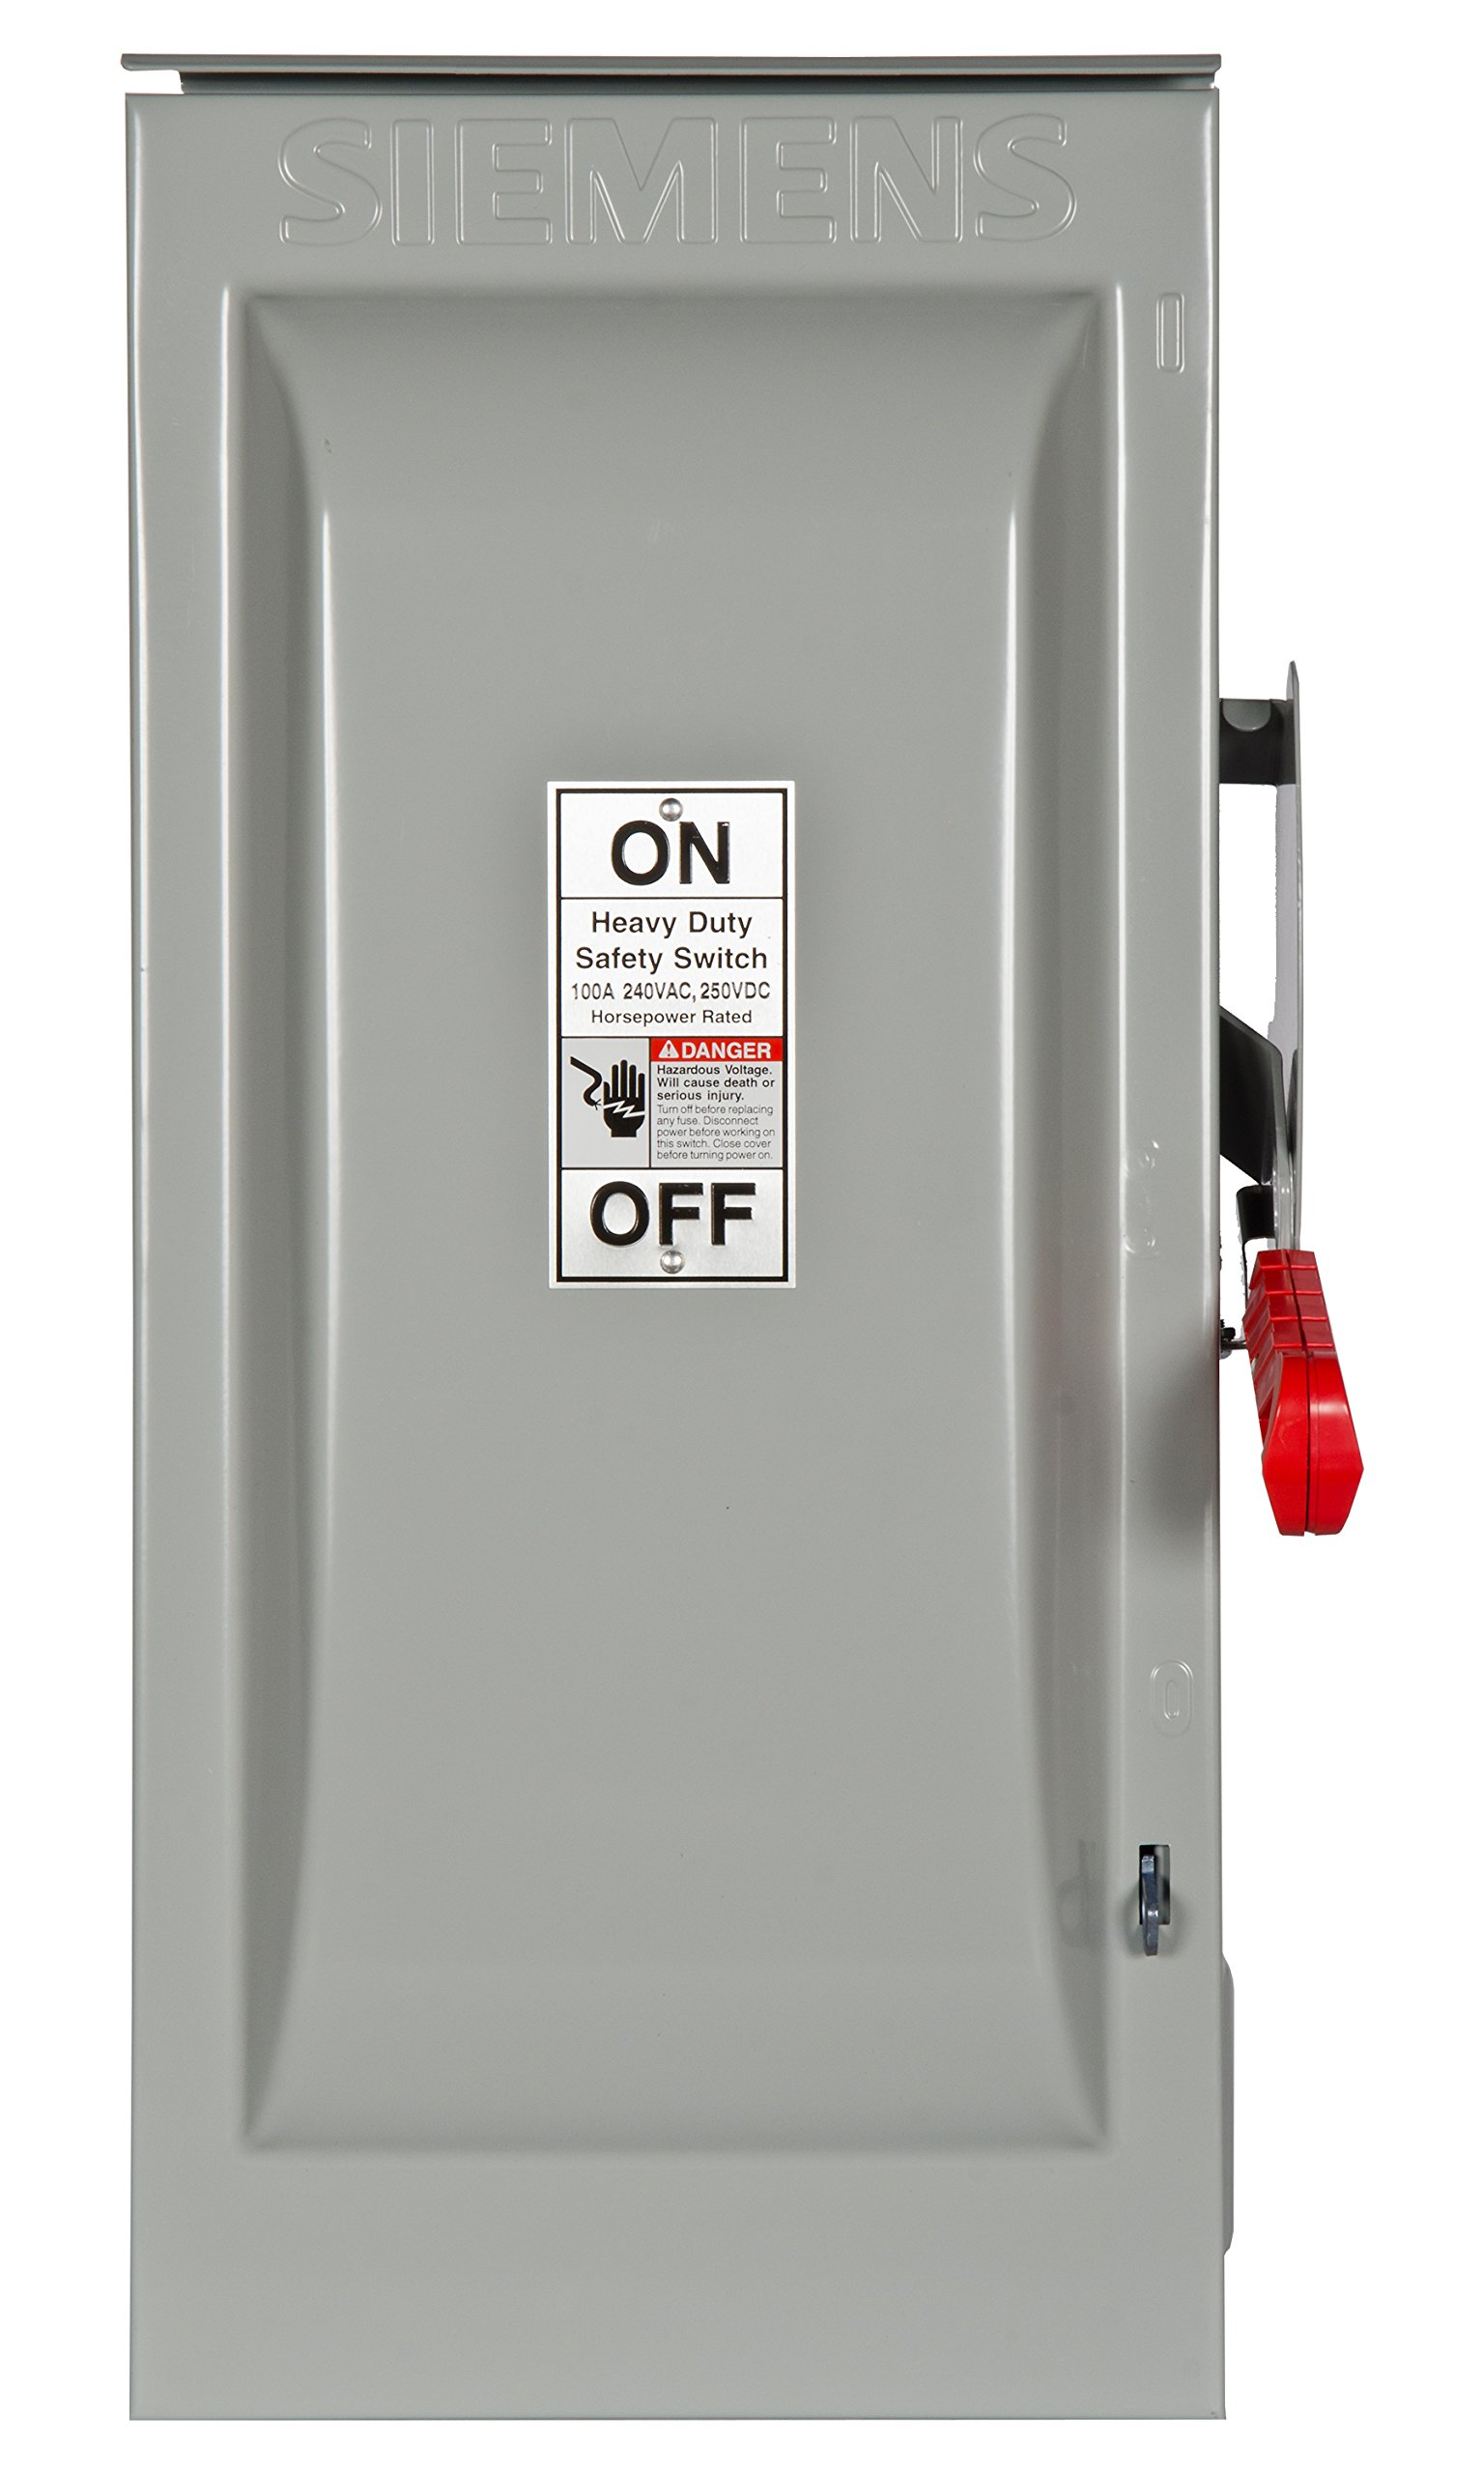 Siemens HF323NR 100-Amp 3 Pole 240-volt 4 Wire Fused Heavy Duty Safety Switches